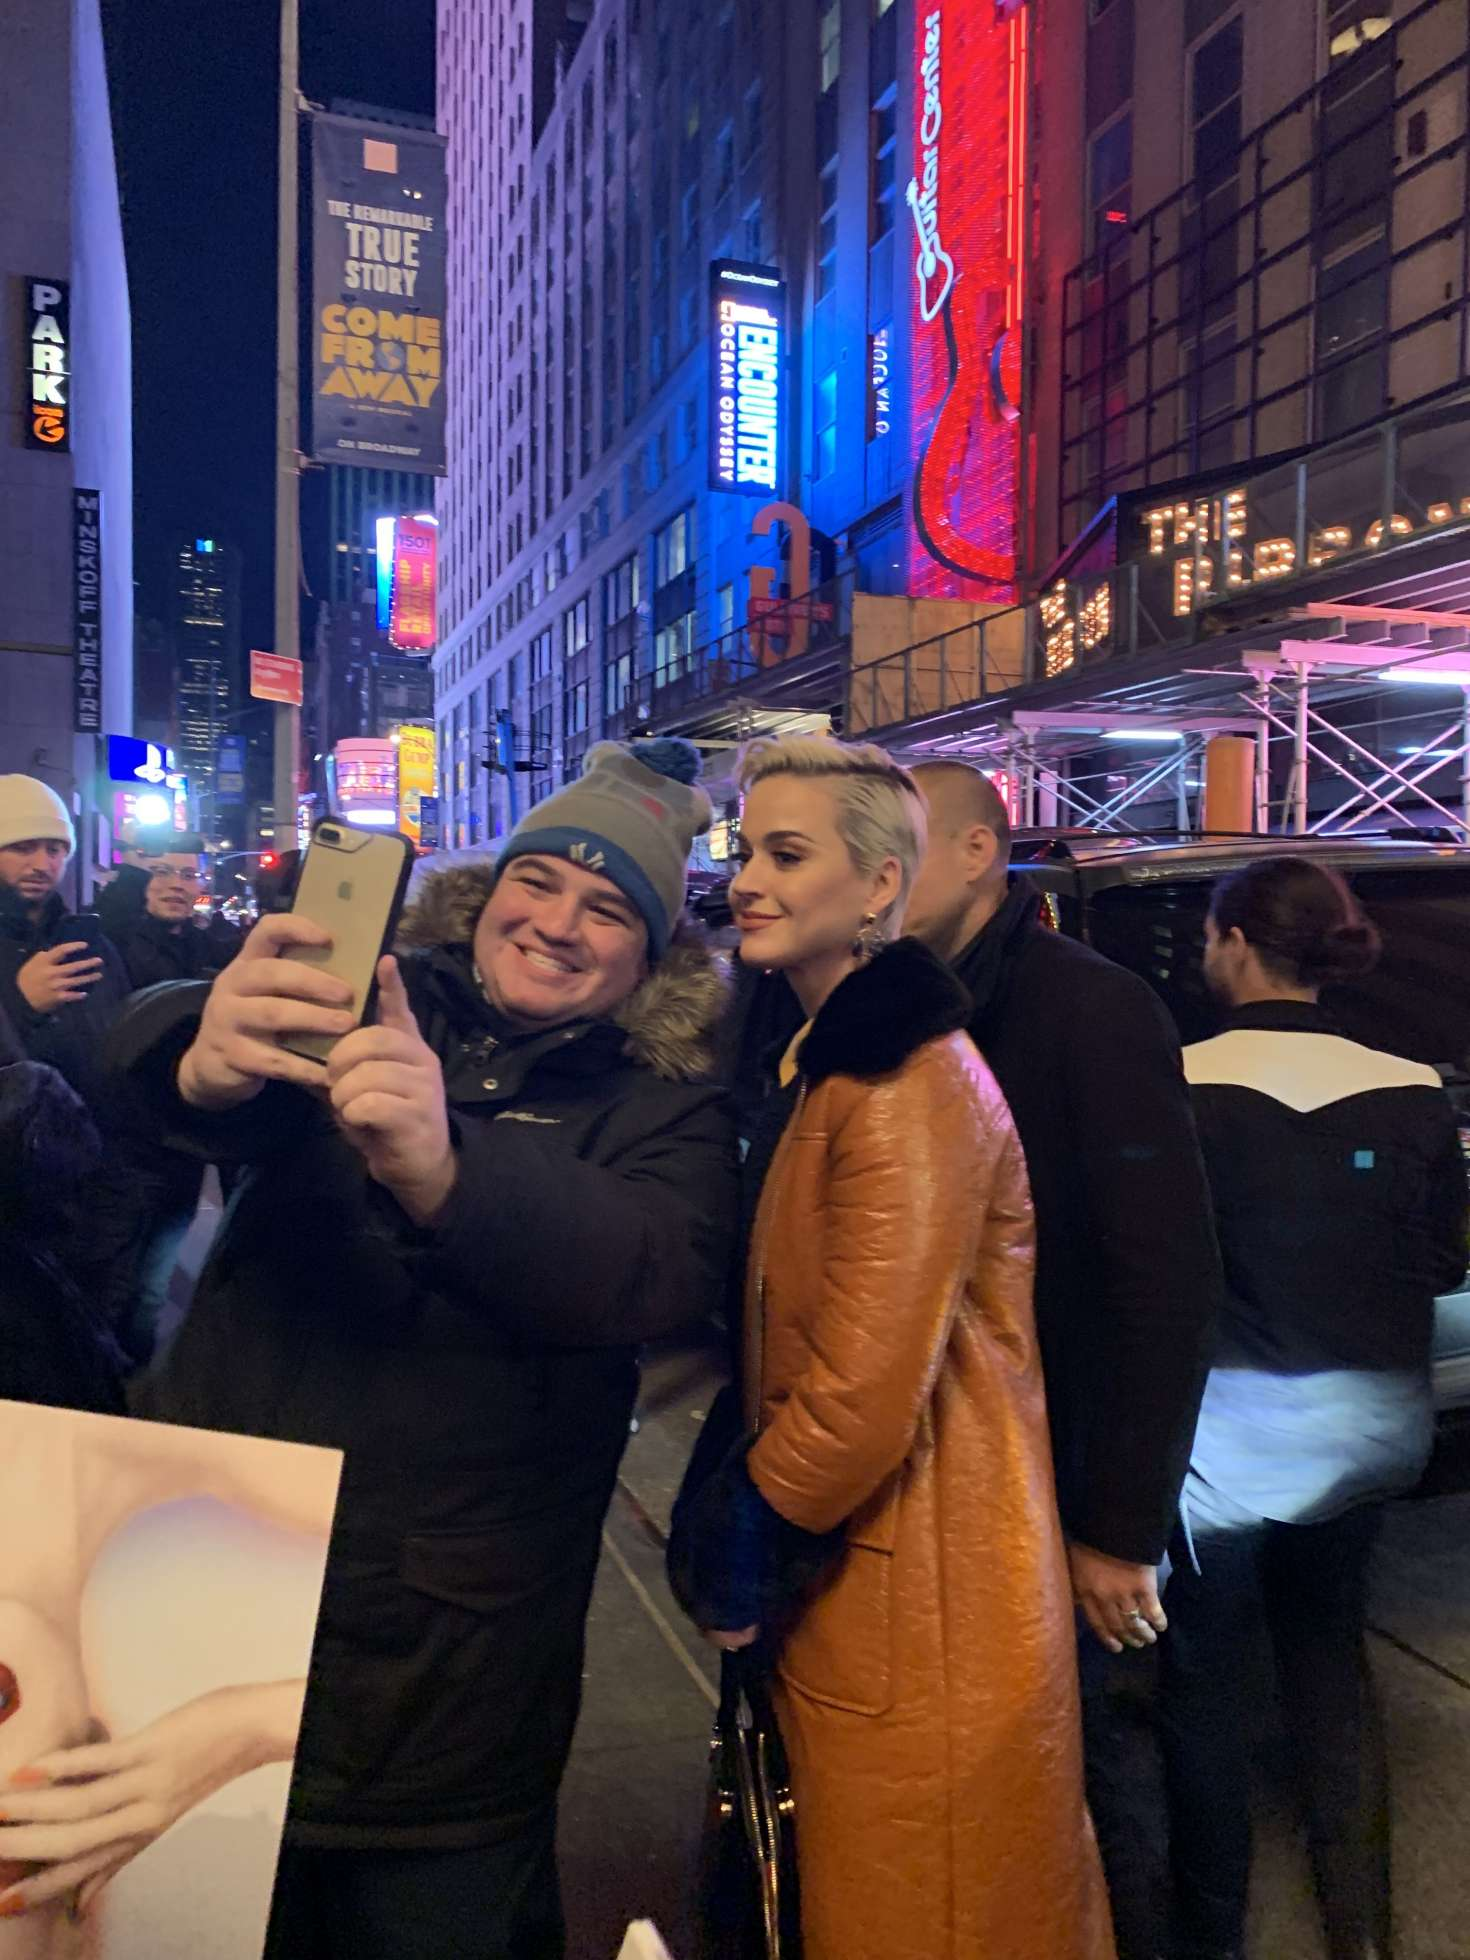 Katy Perry - Poses for a selfie with a fan in NYC